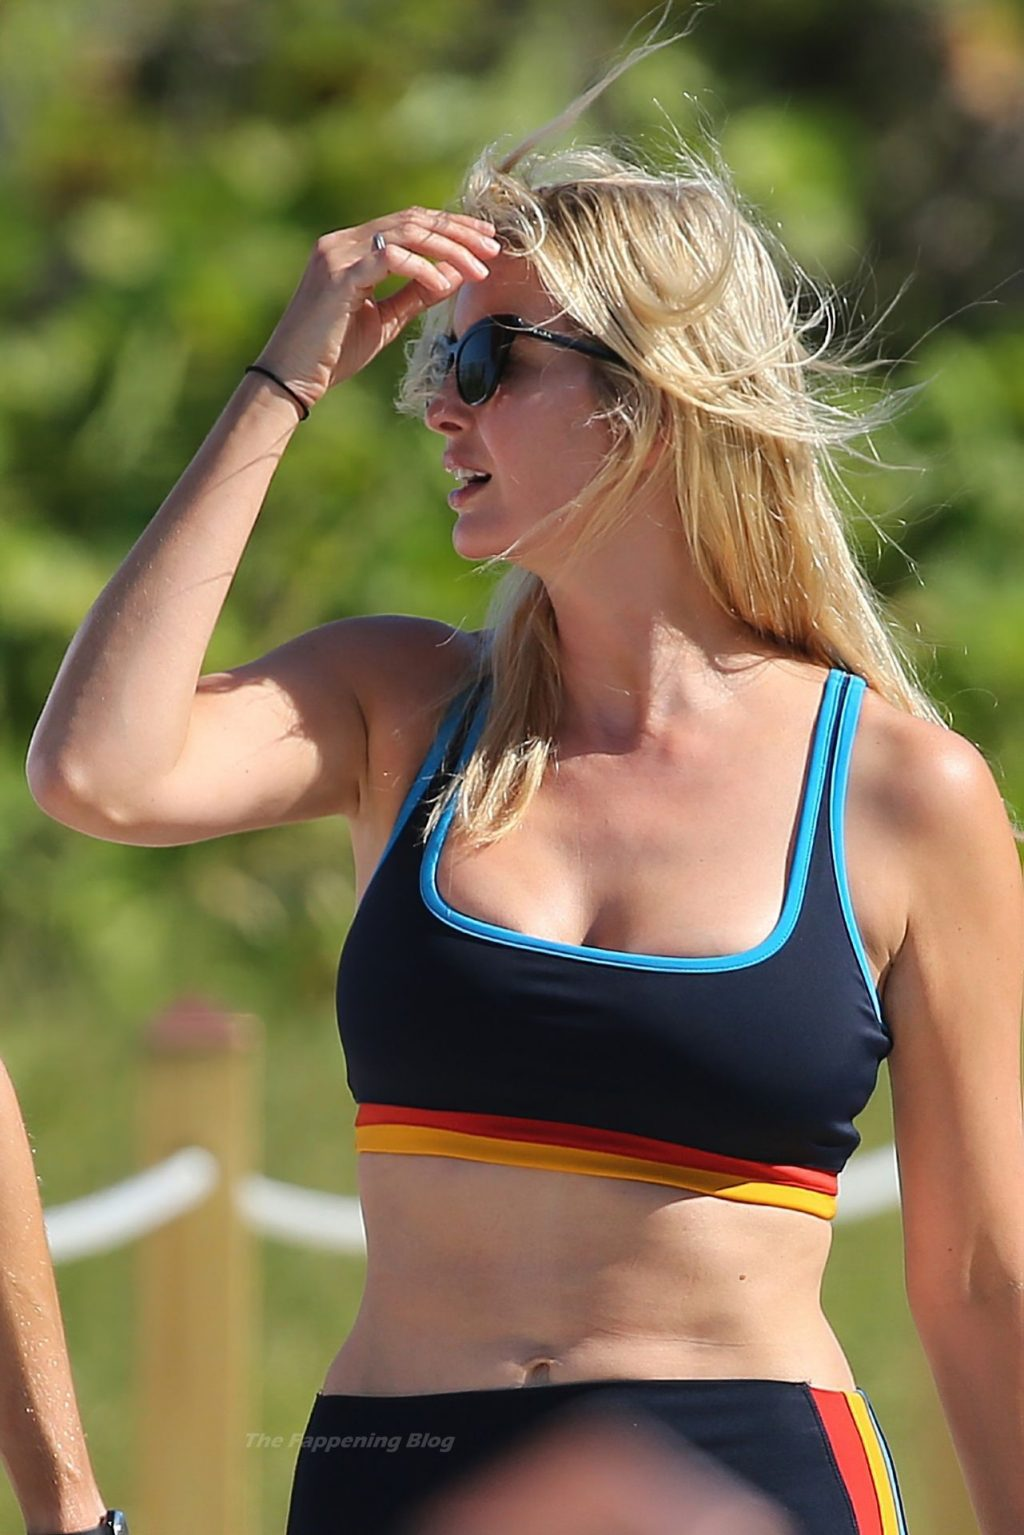 Ivanka Trump Shows Off Her Curves in a Sports Bra and Leggings (71 Photos)